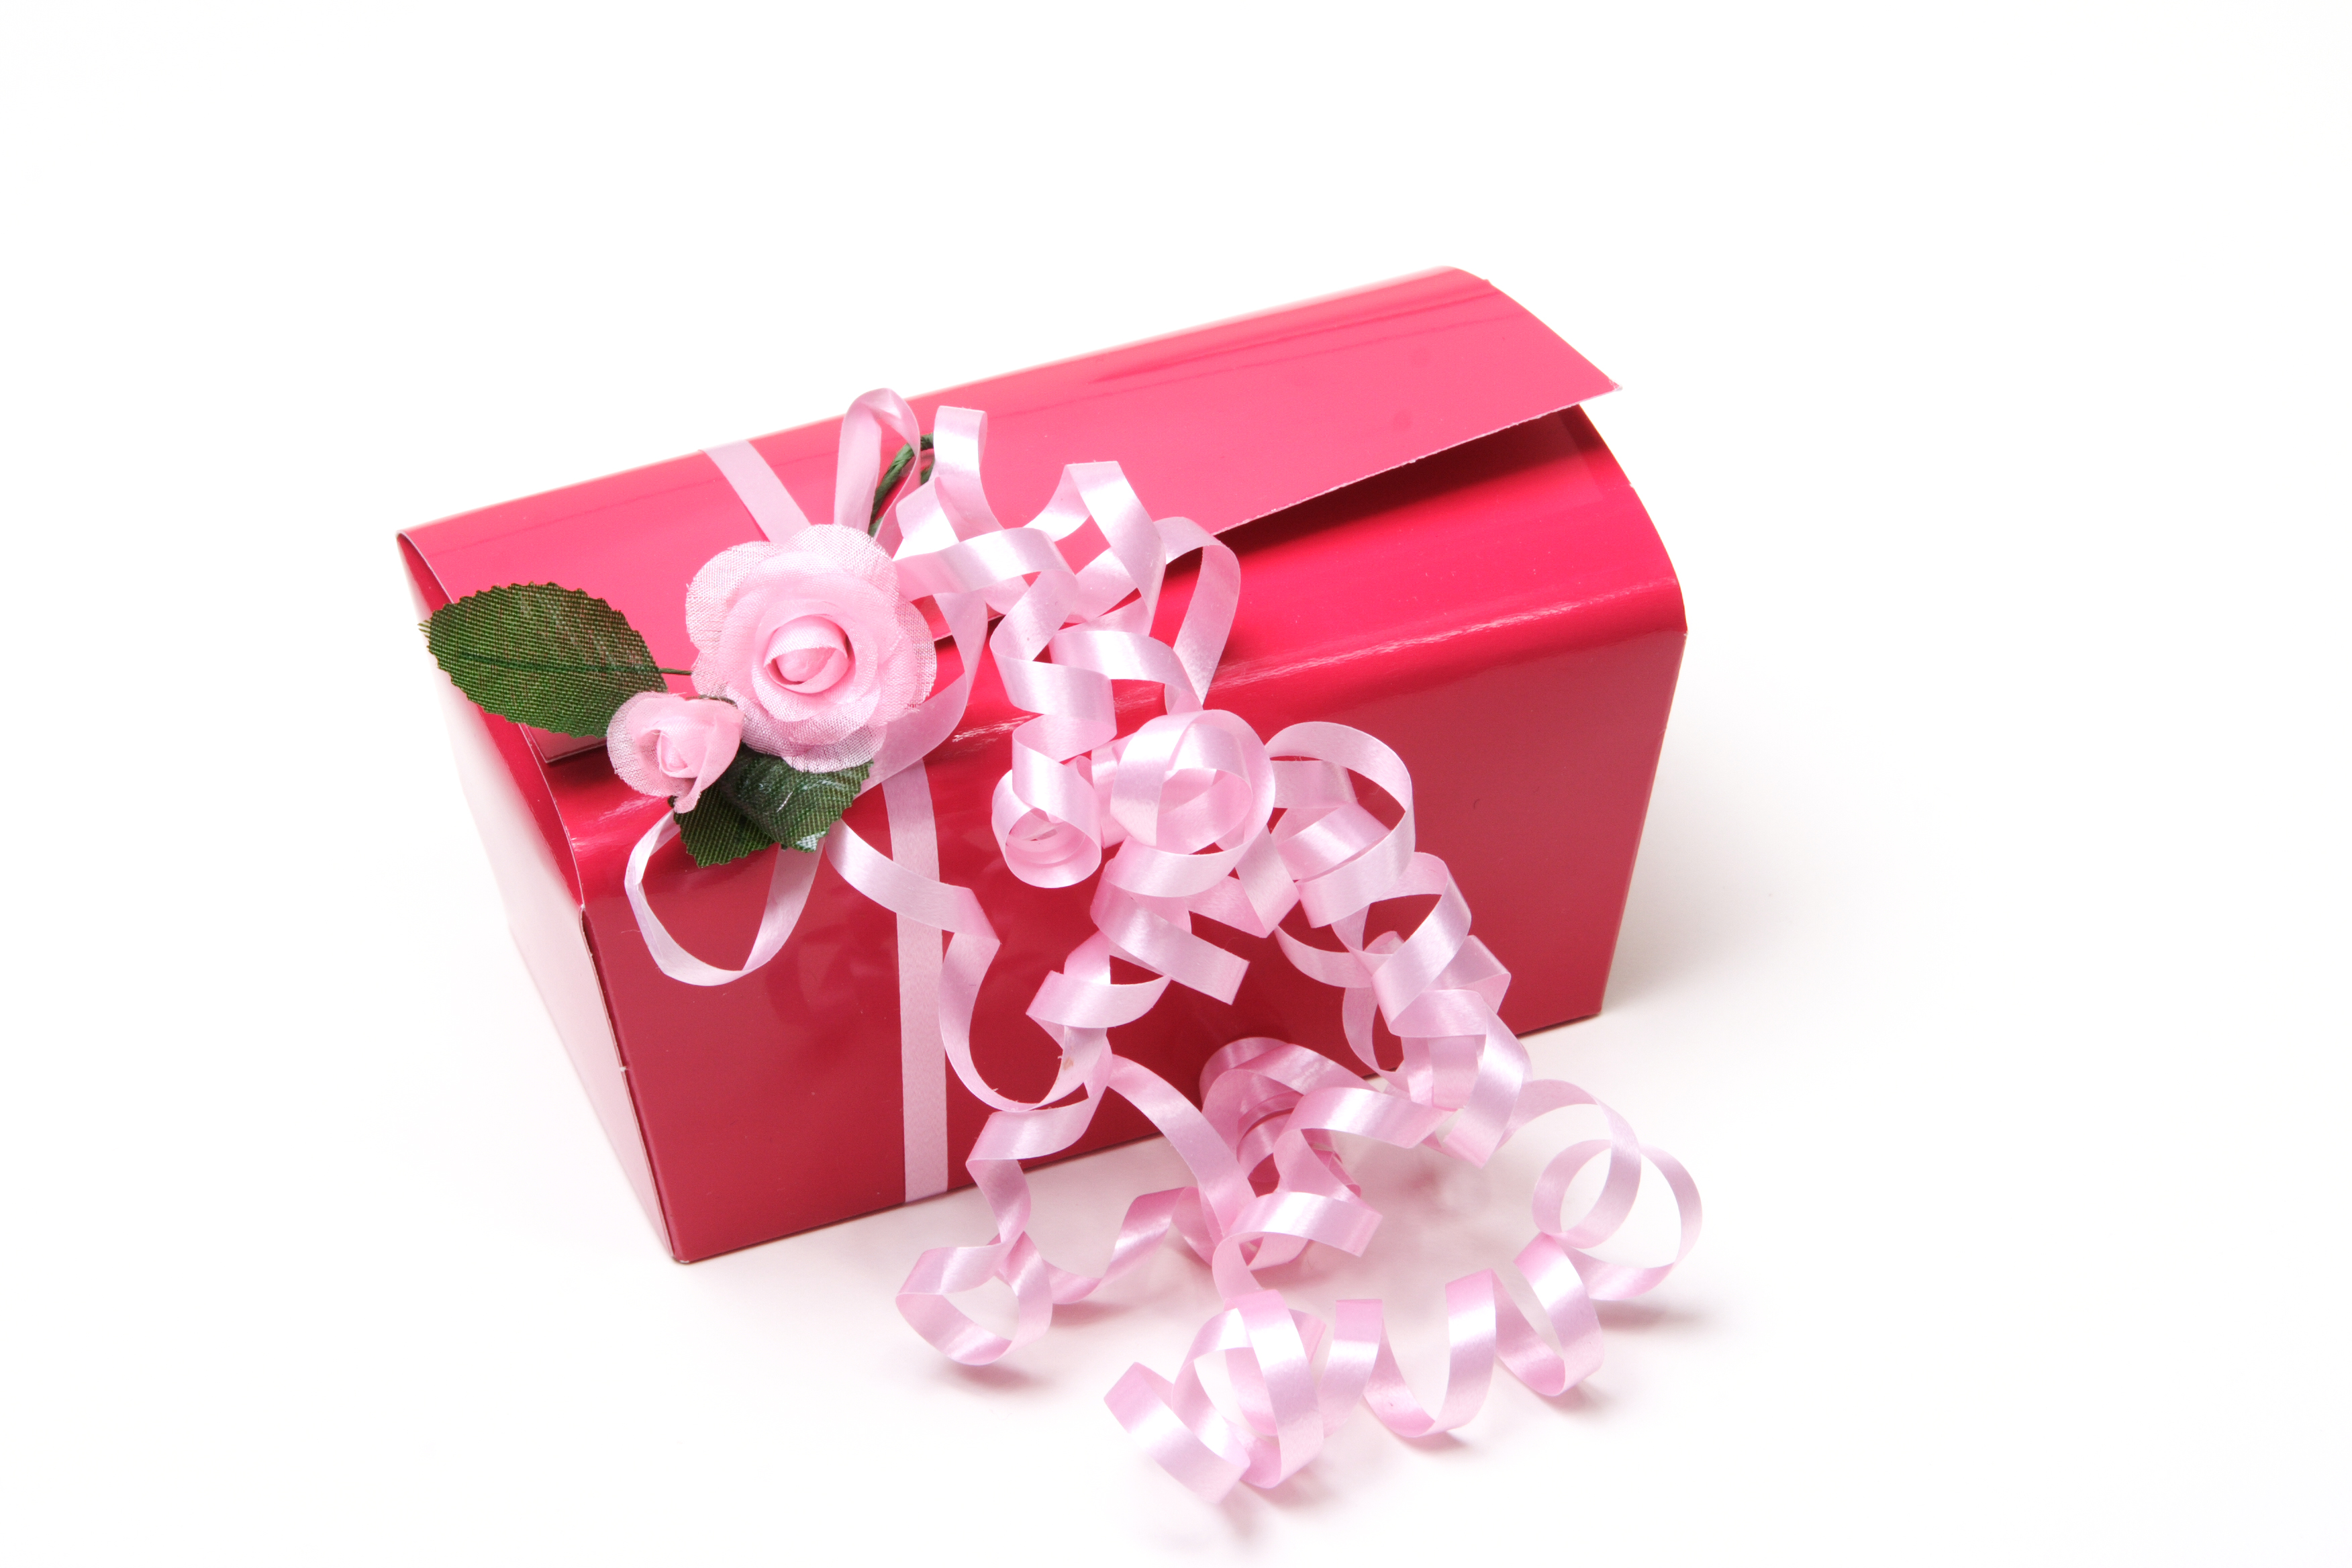 Anniversary Gift Ideas: Ideas for Wedding Anniversary gifts - Part 2